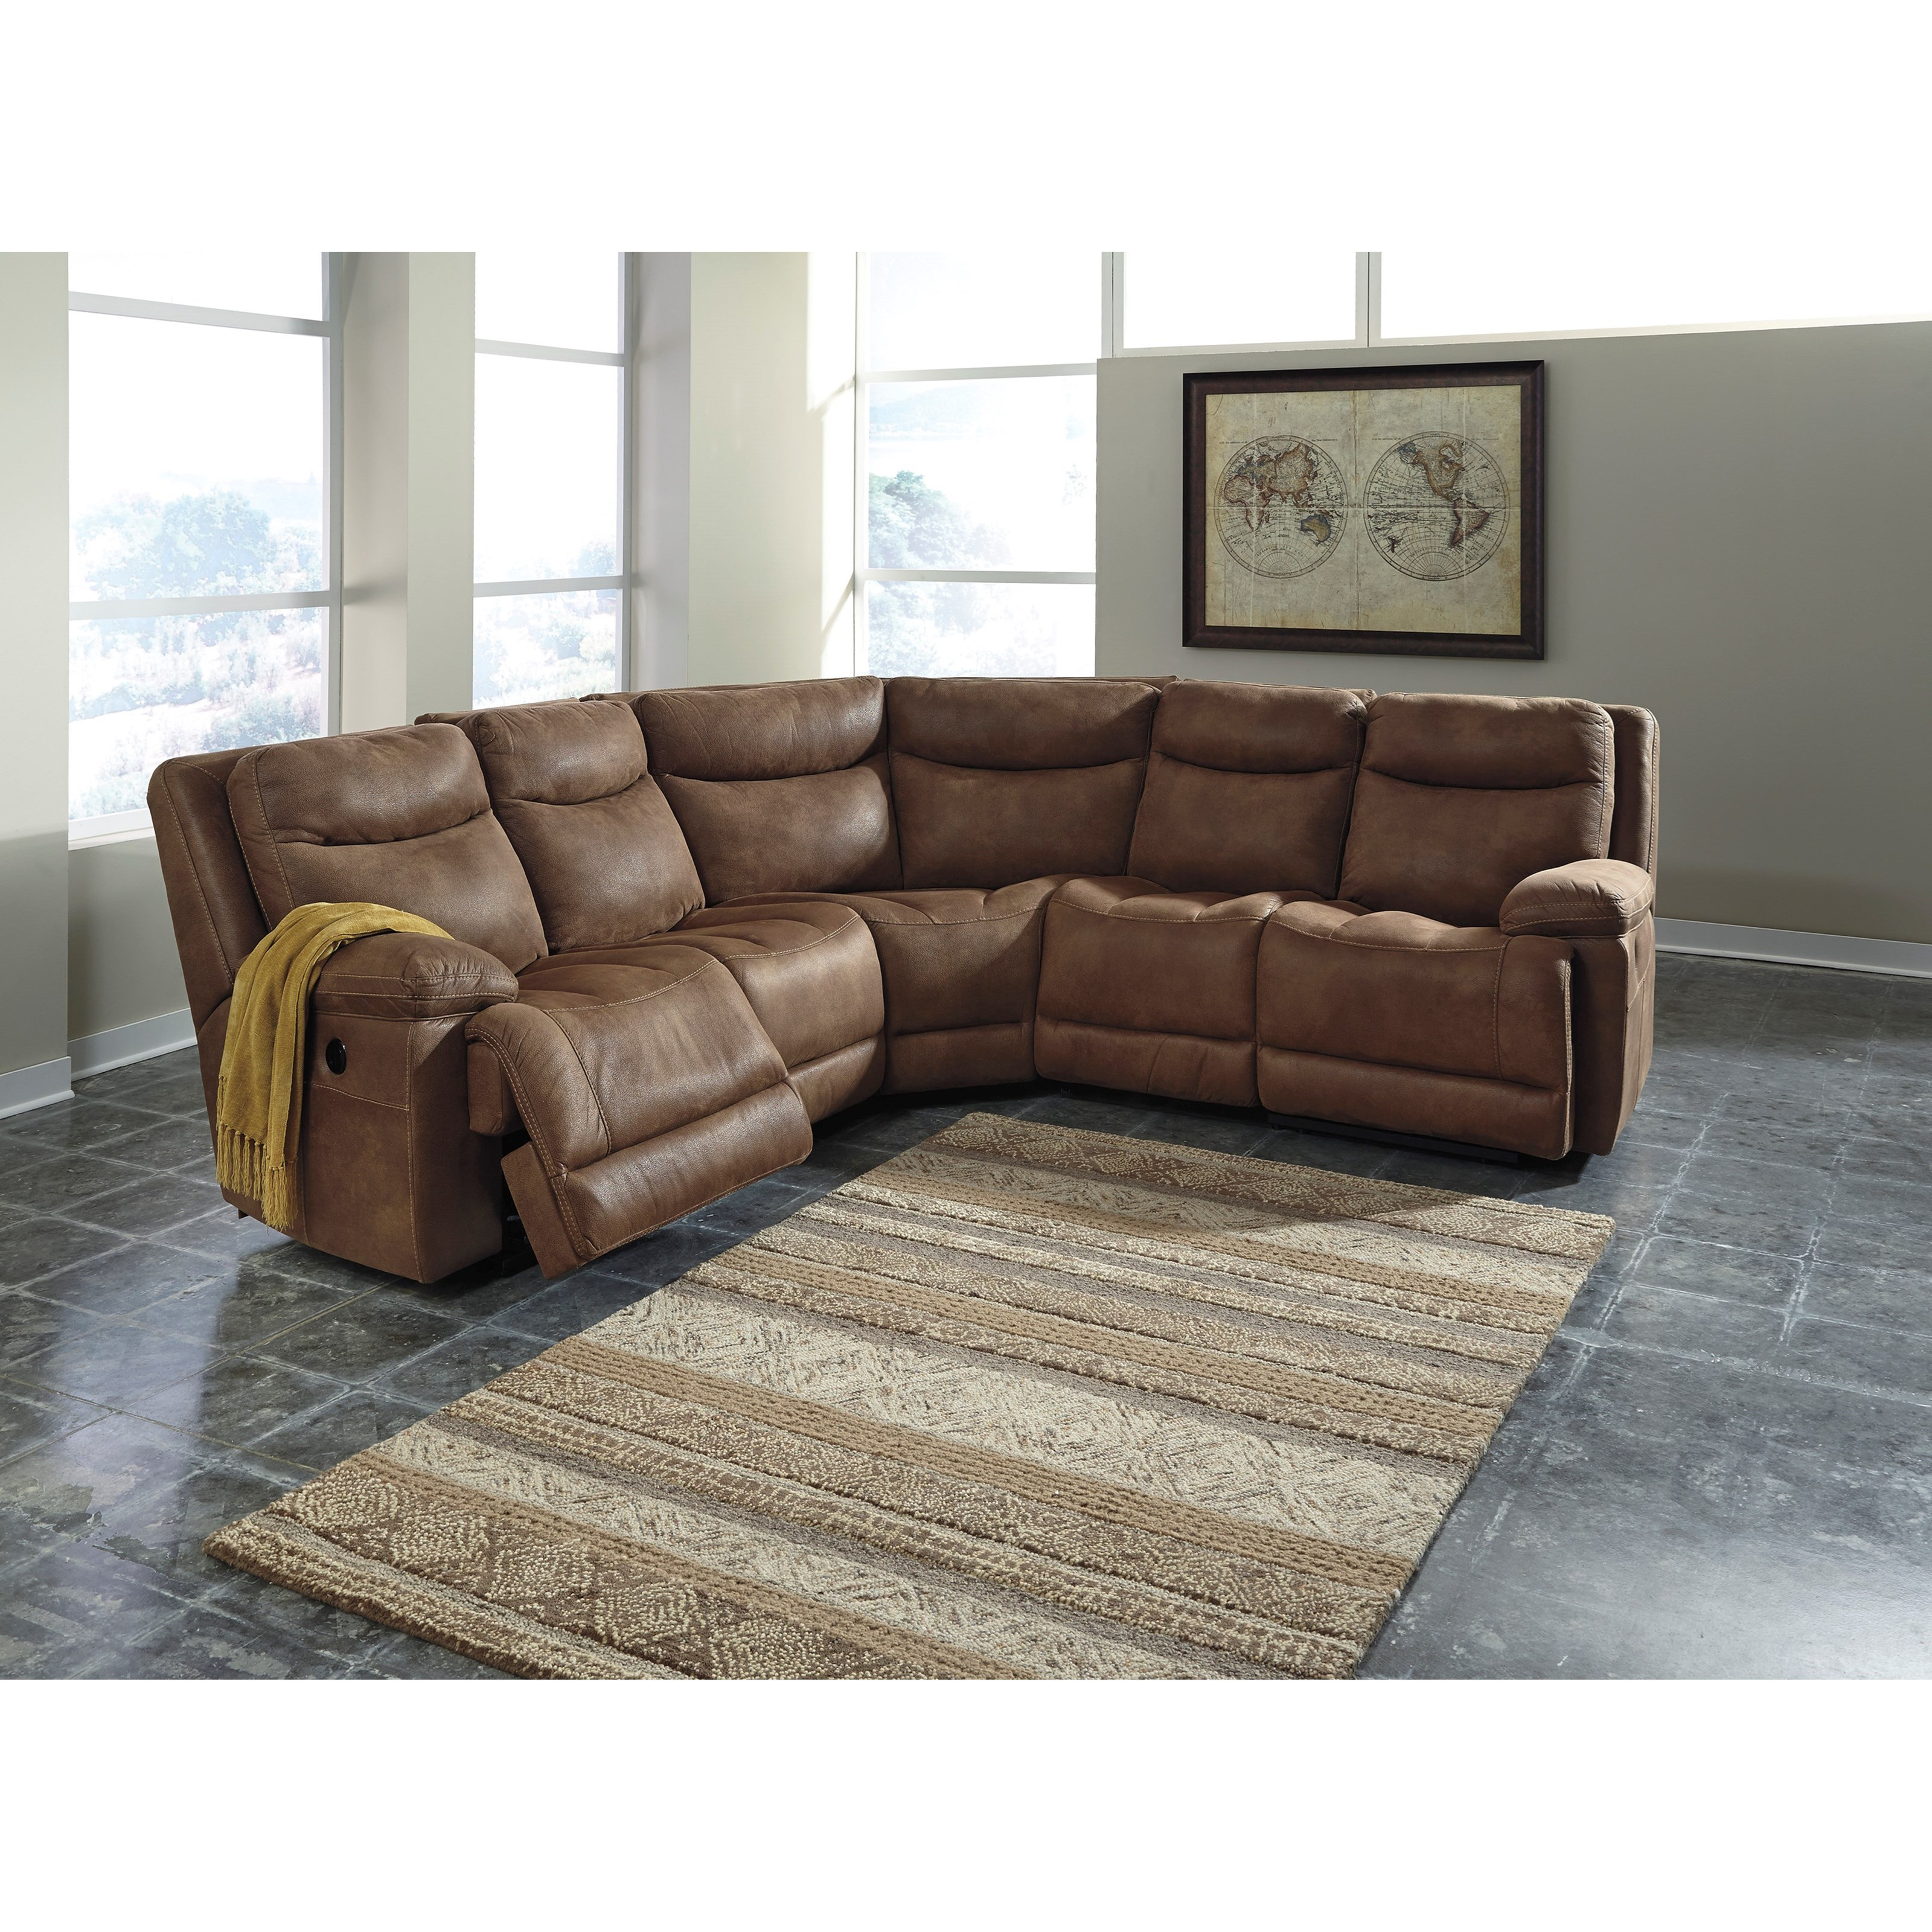 5 Piece Power Reclining Sectional by Signature Design by Ashley